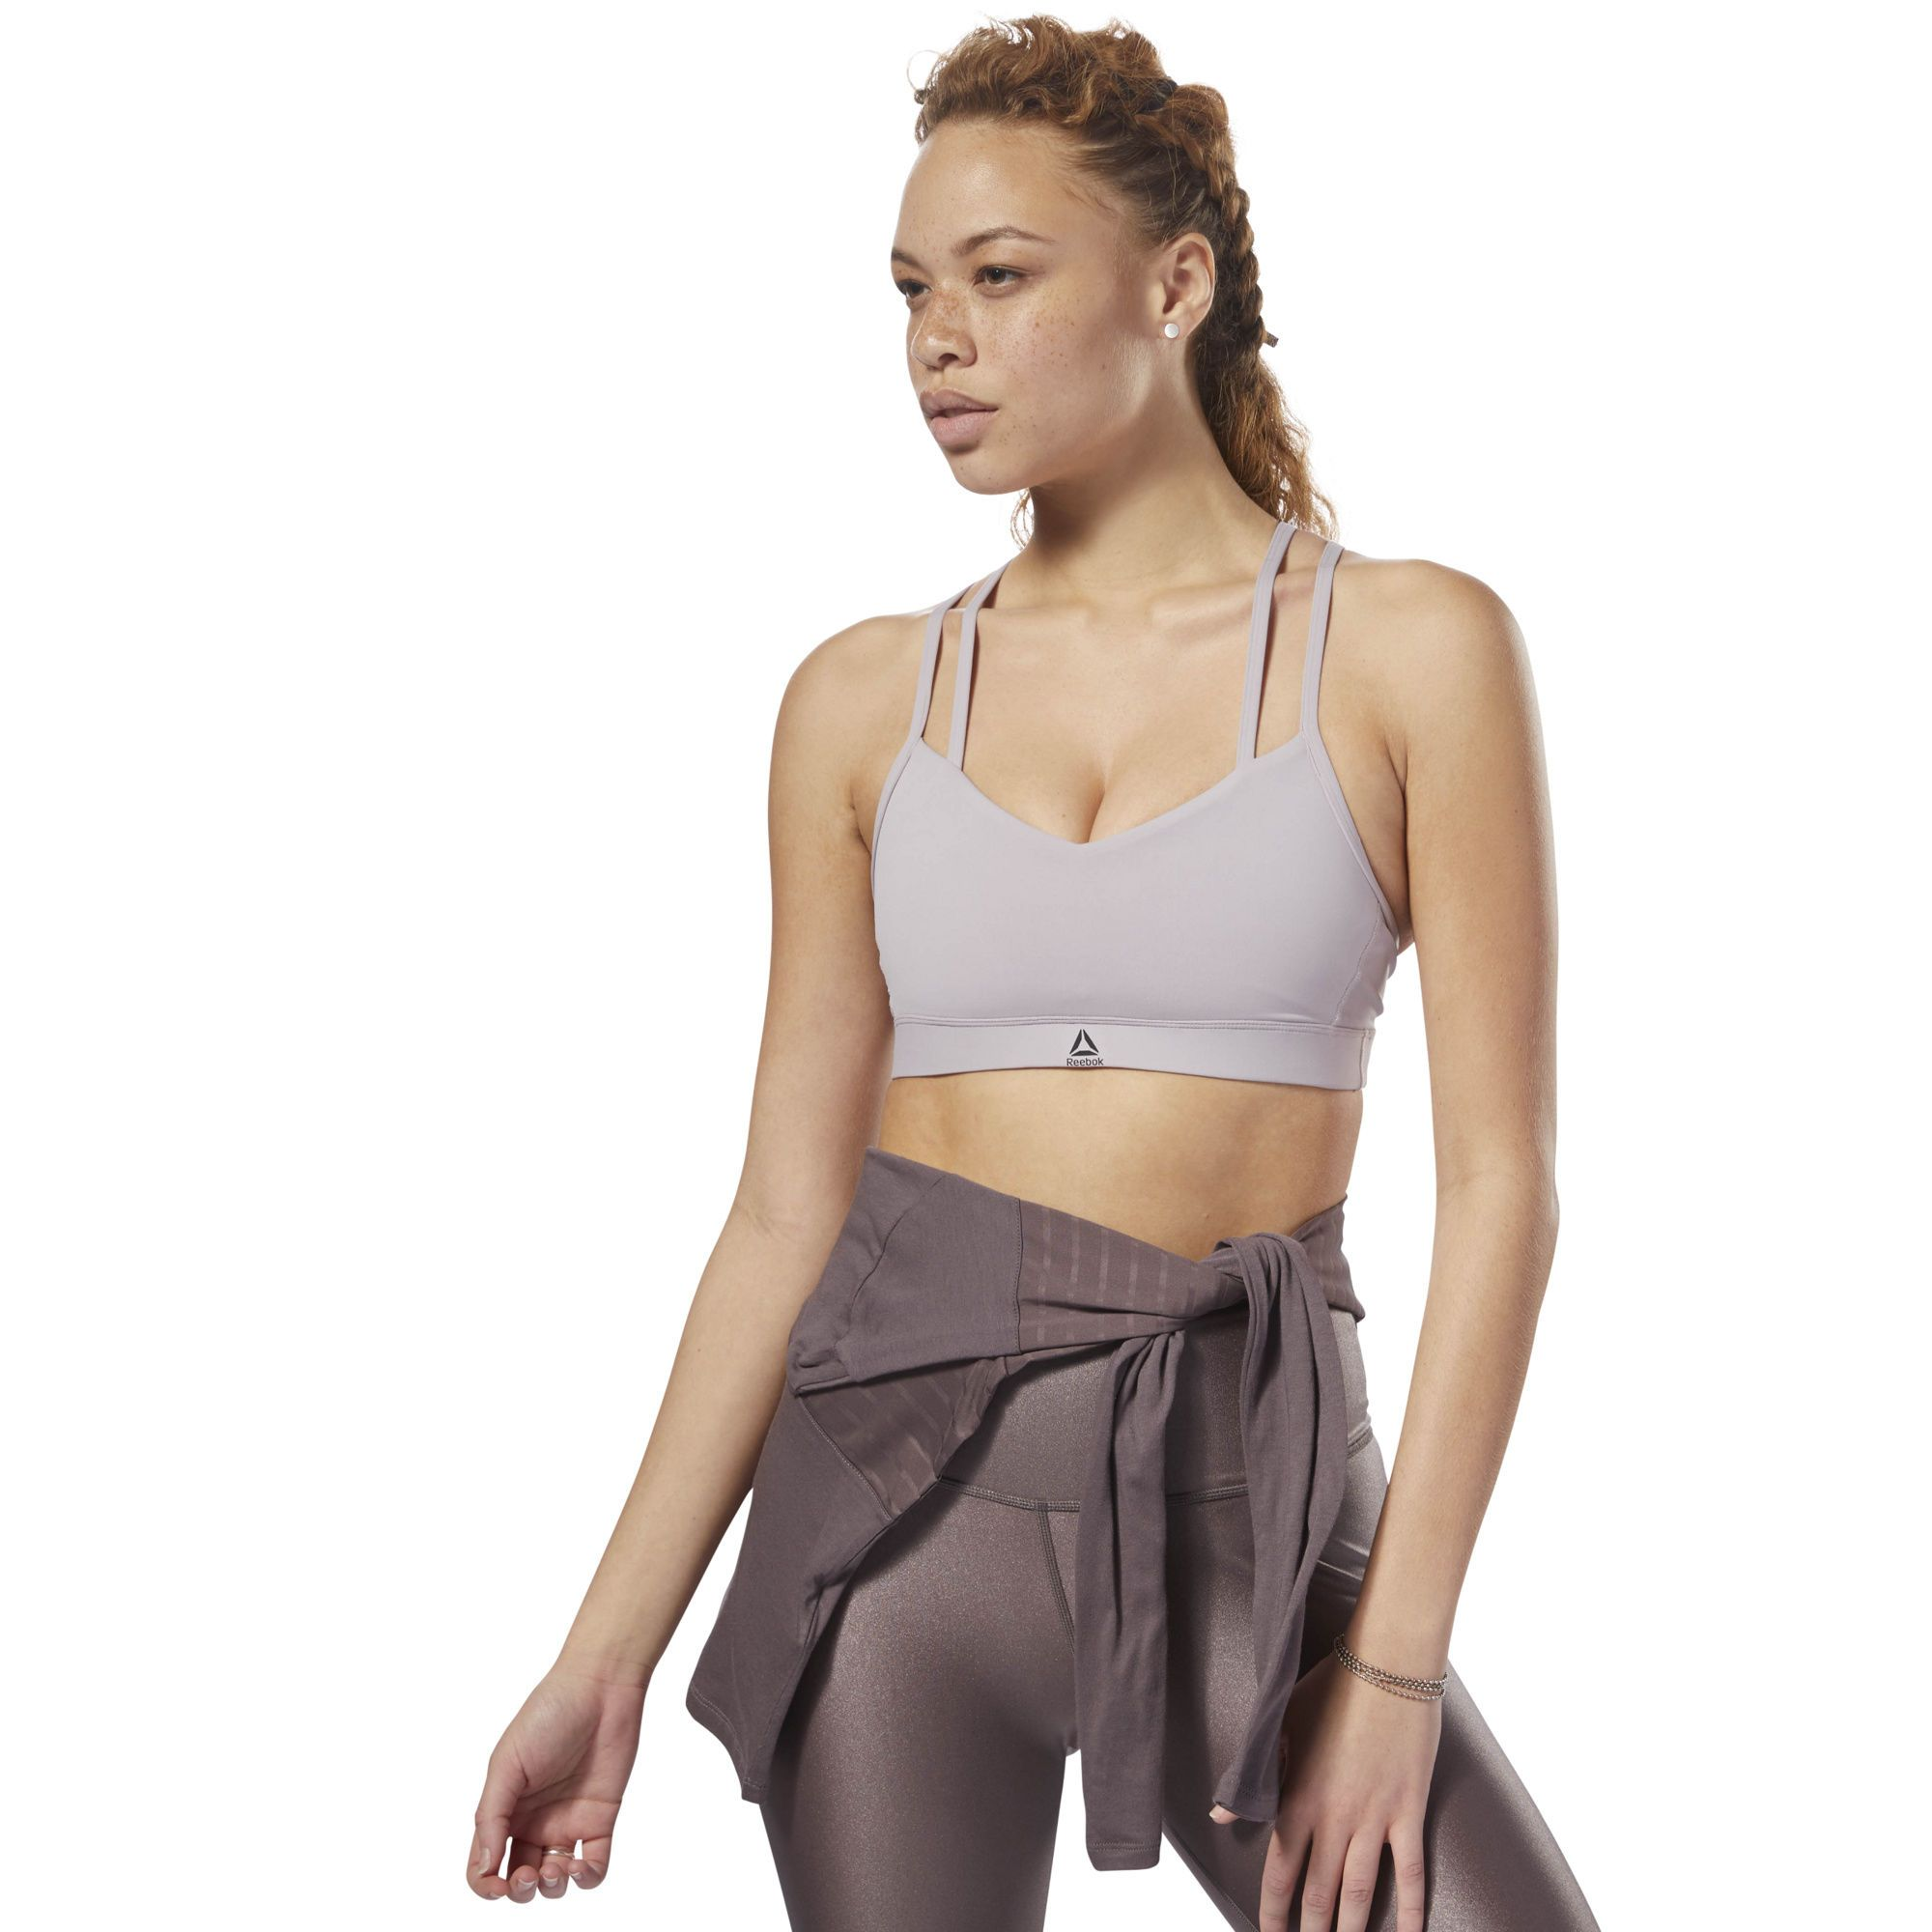 576fe45721 See all the styles and colors of Reebok Hero Strappy Padded Bra - Purple at  the official Reebok US online store.